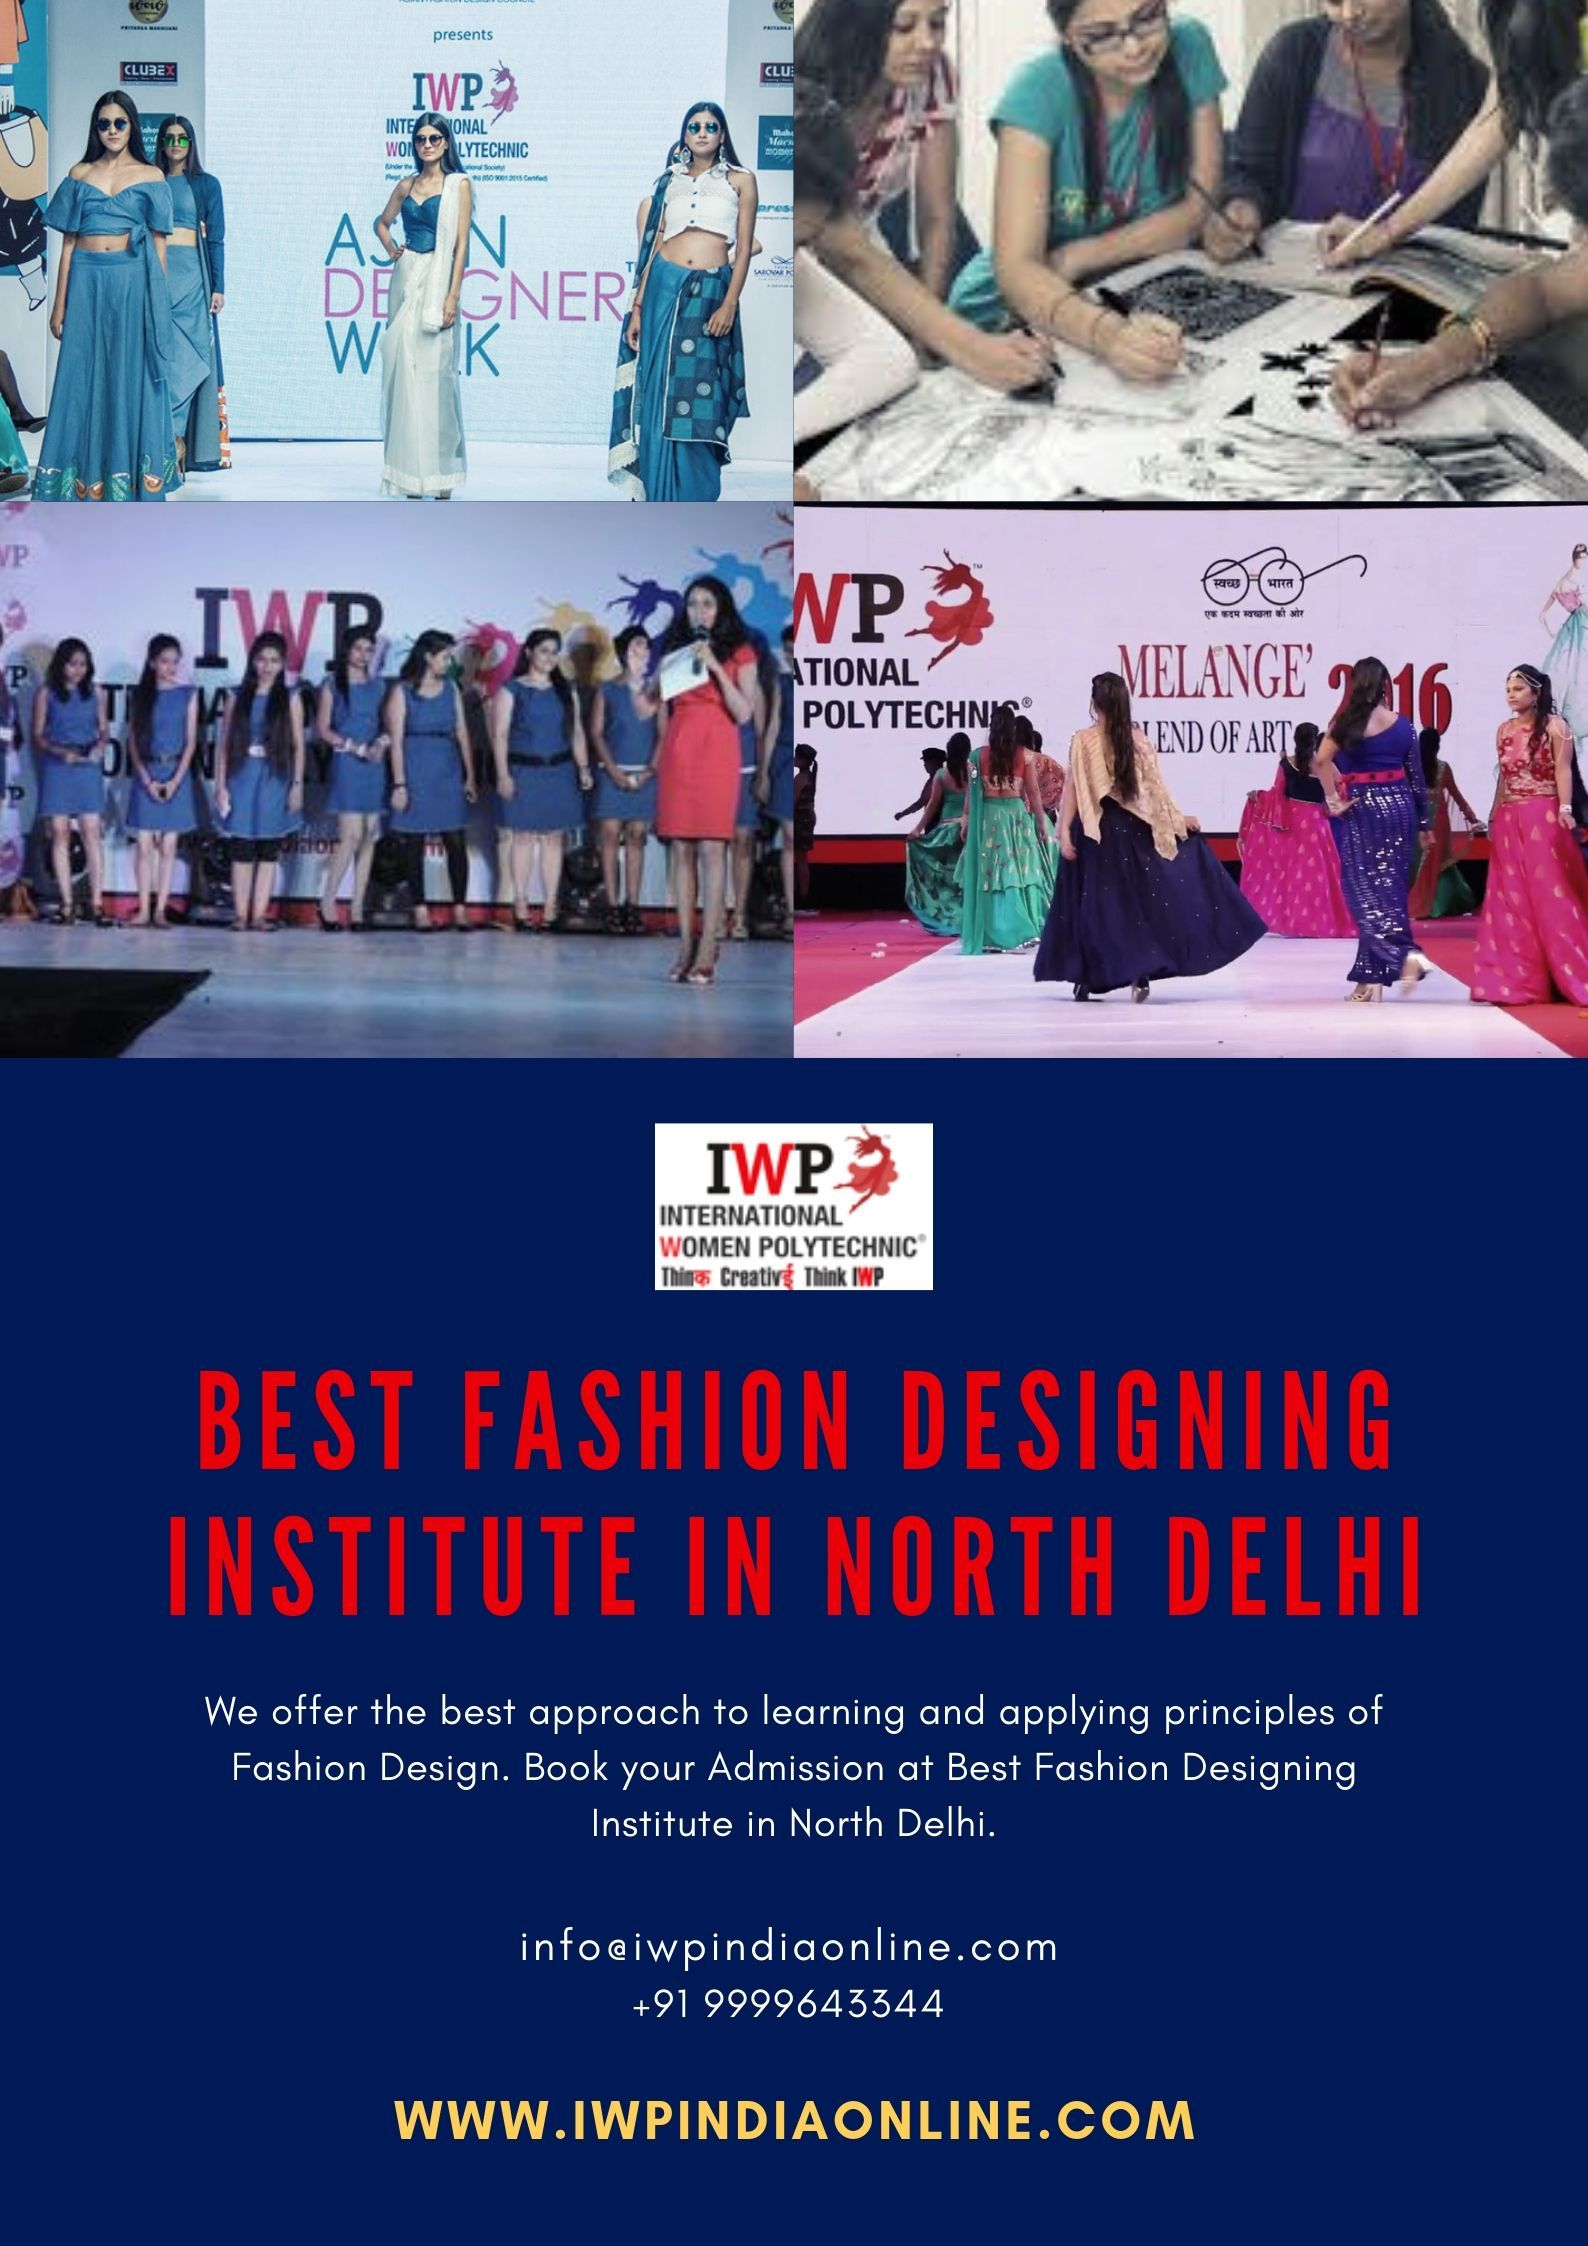 Connect With An Iwp Which Is The Best Fashion Designing Institute In North Delhi Our Fashion Fashion Designing Institute Model Town Fashion Designing Course